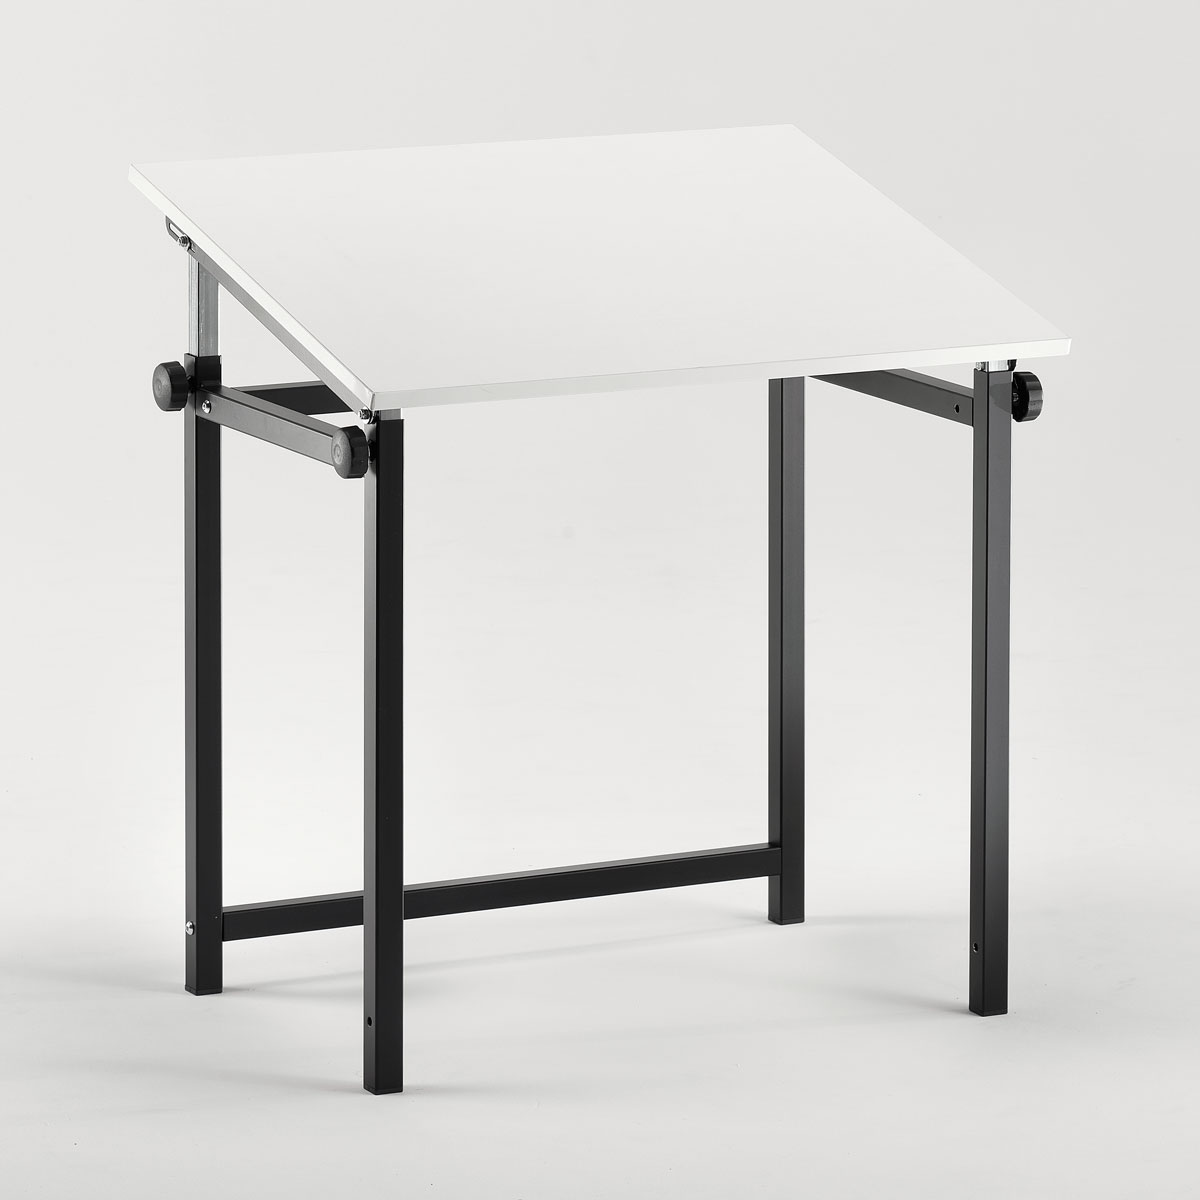 school rectangle table. Drafting Table For School Rectangle